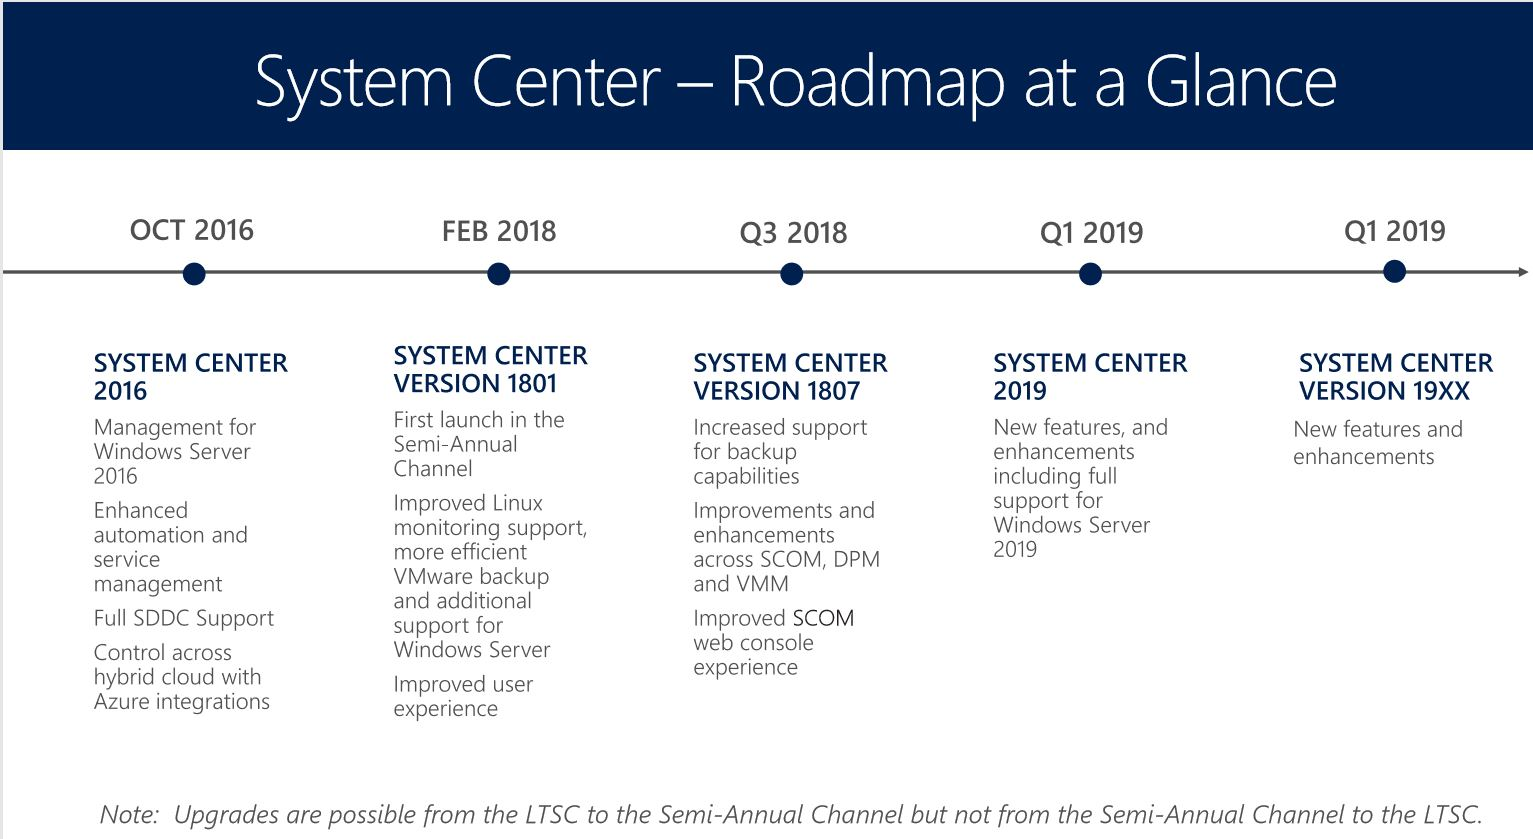 Microsoft announced System Center 2019 for Q1 2019 in System Center Roadmap